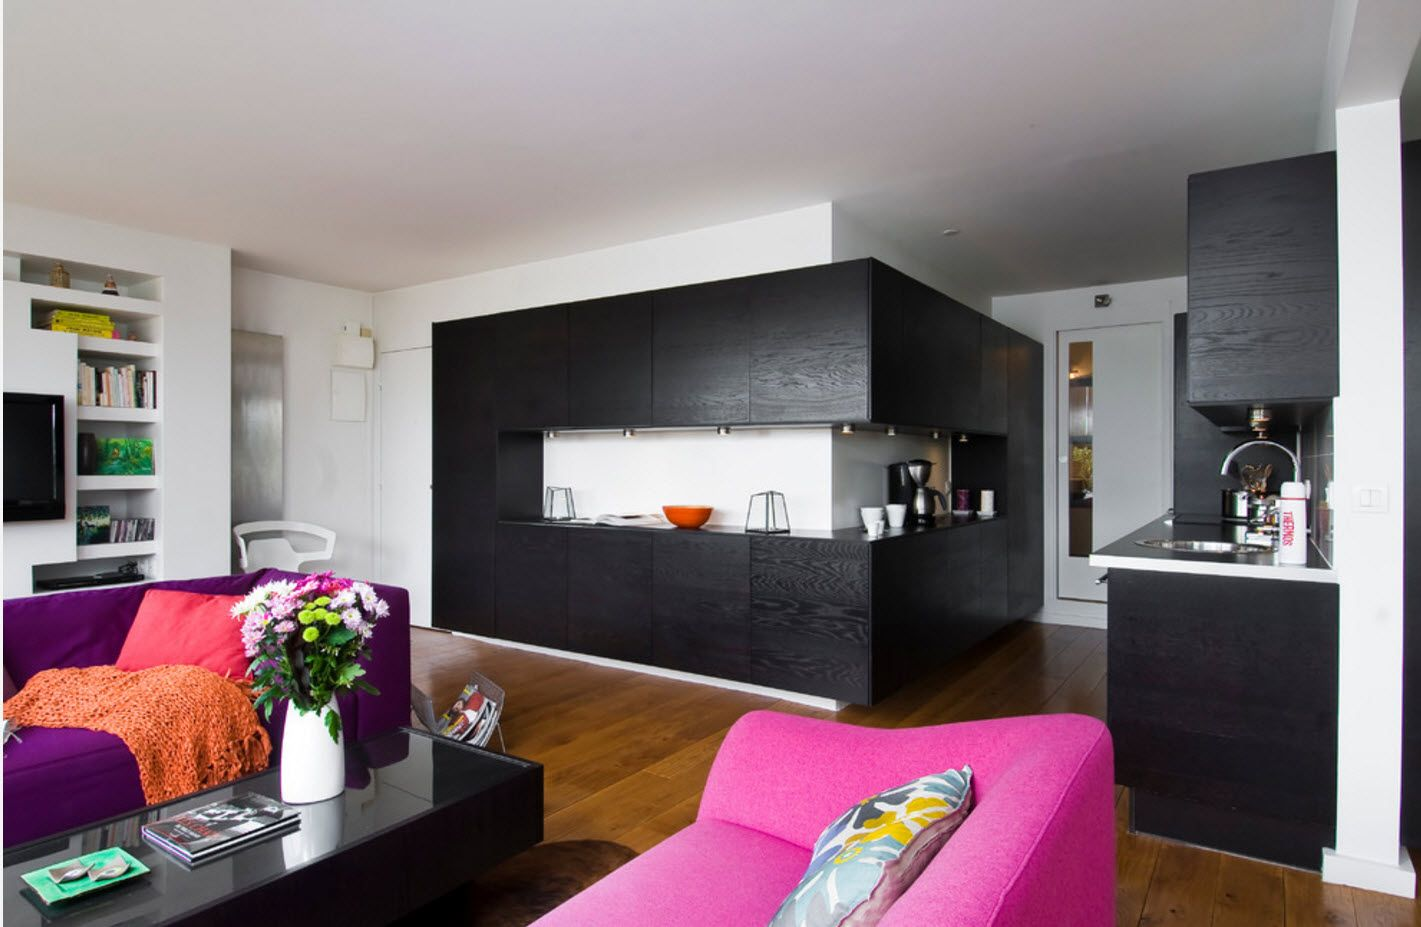 Gorgeous modern angular black monolith of kitchen set